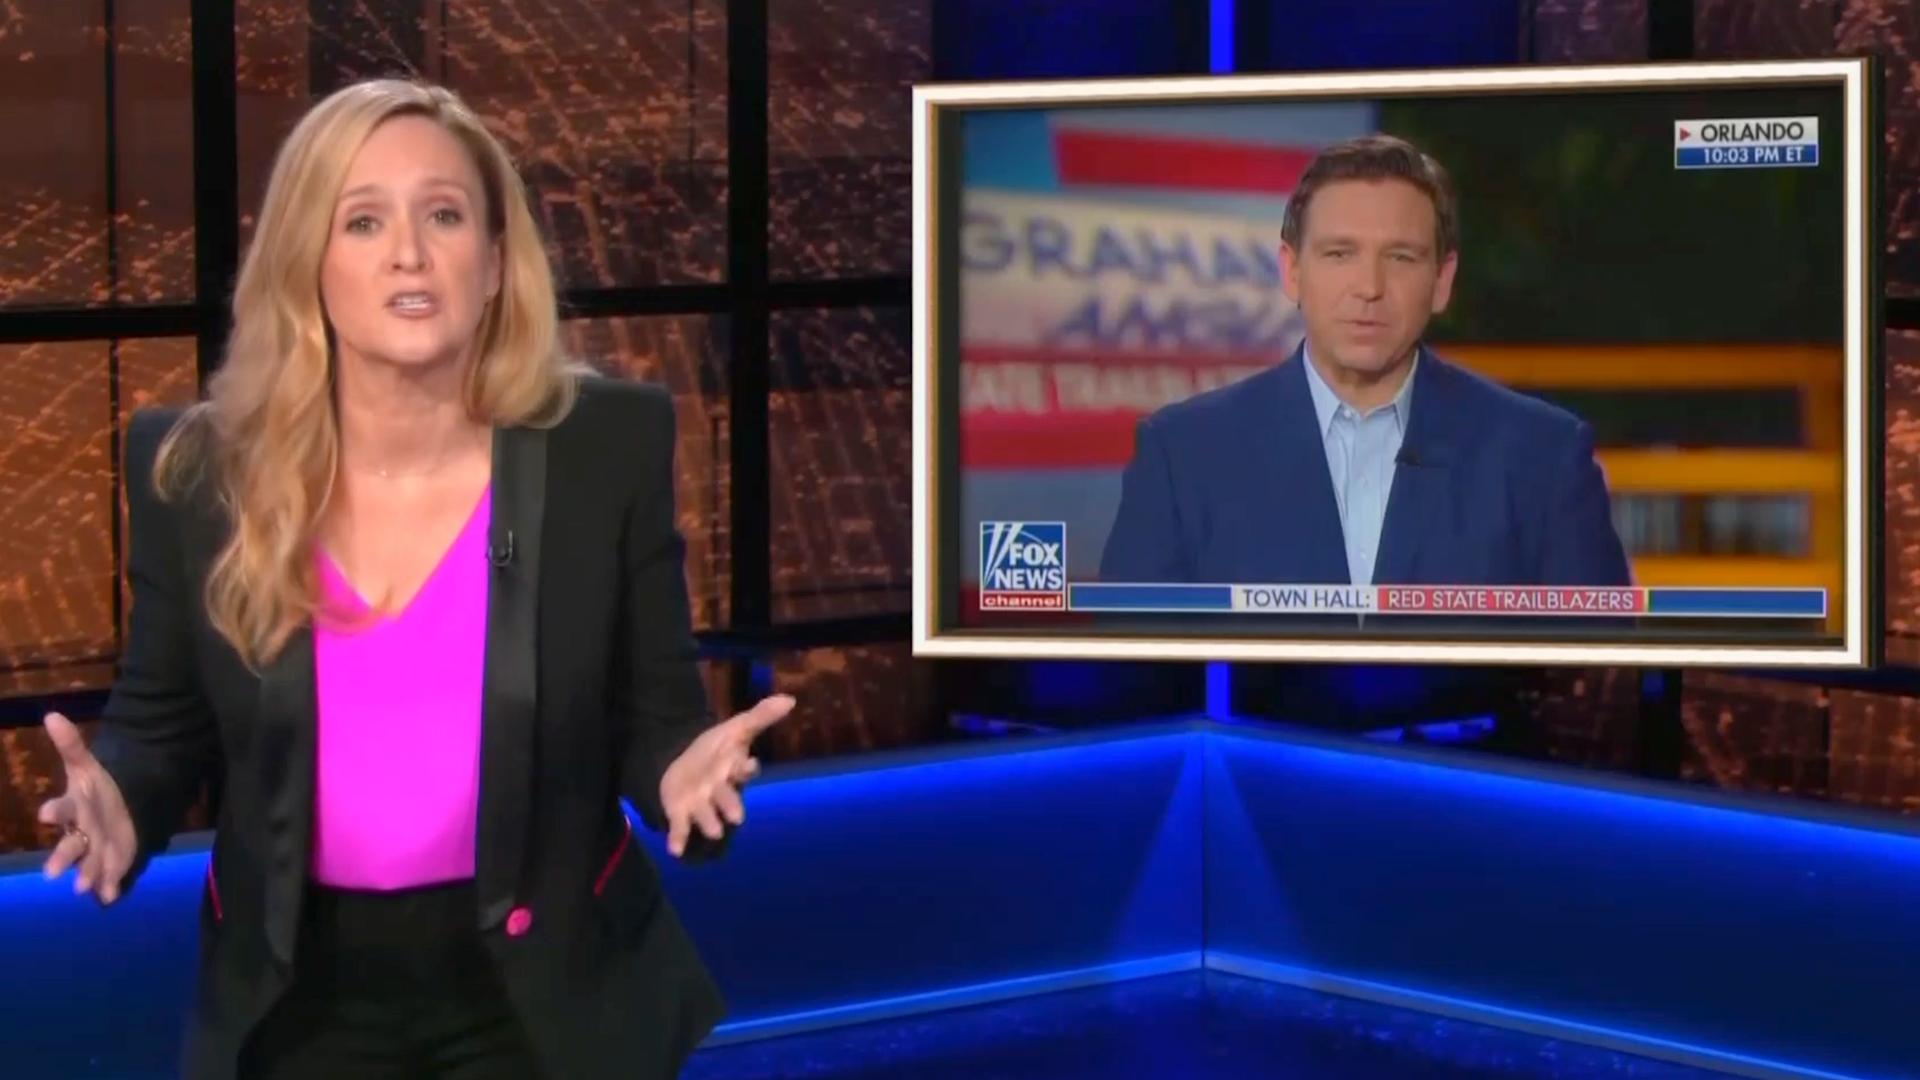 Samantha Bee rips apart Ron DeSantis: 'One of the worst governors in Florida history'